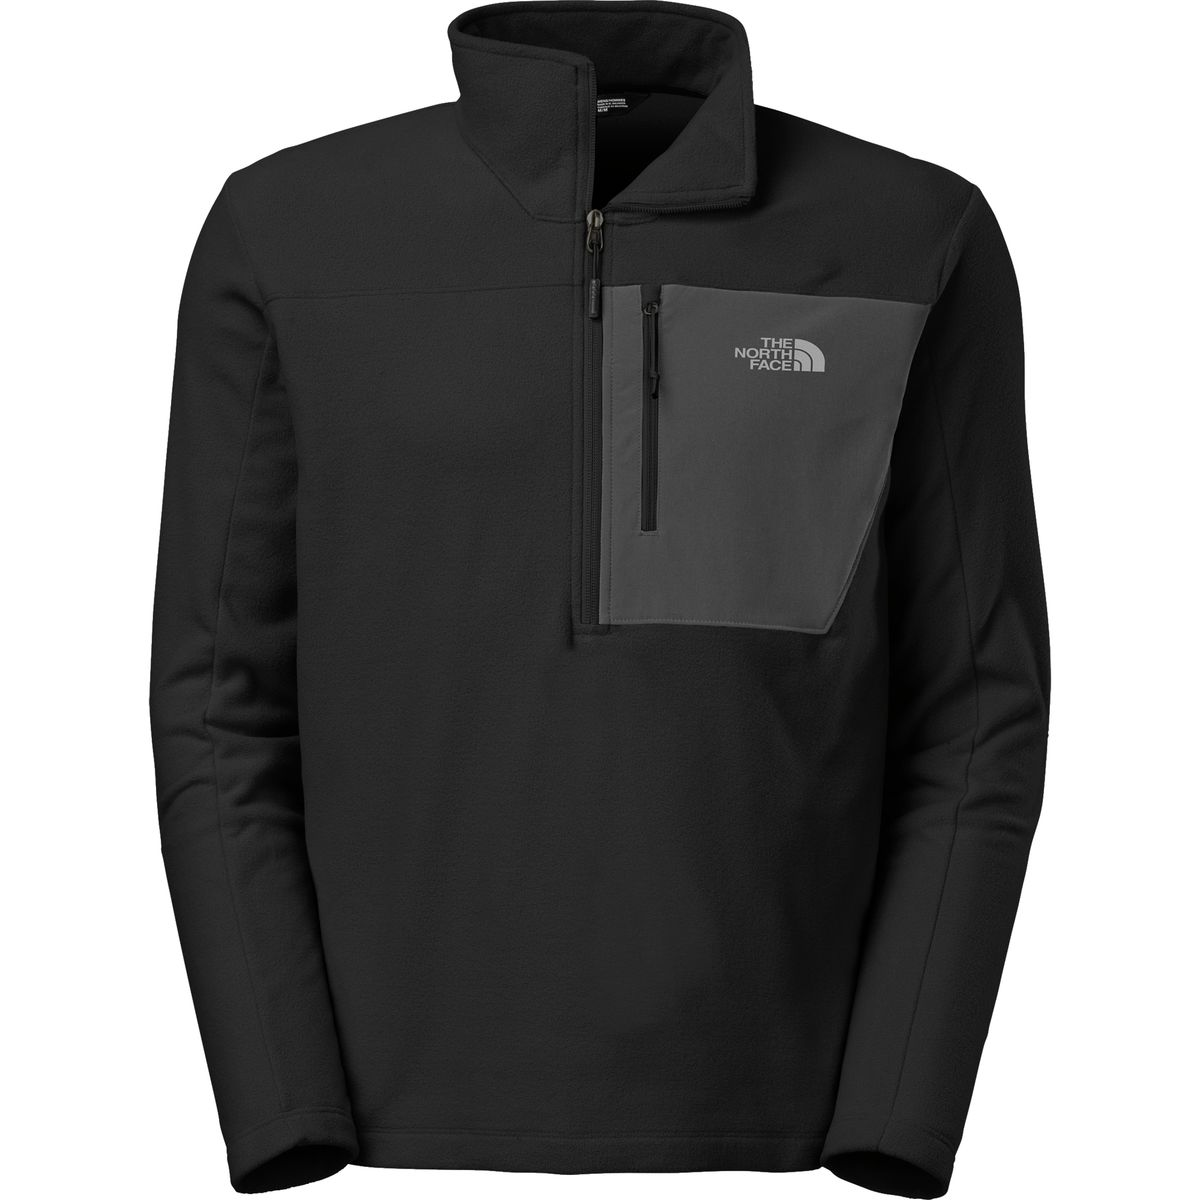 The North Face Tech 100 1/2 Zip